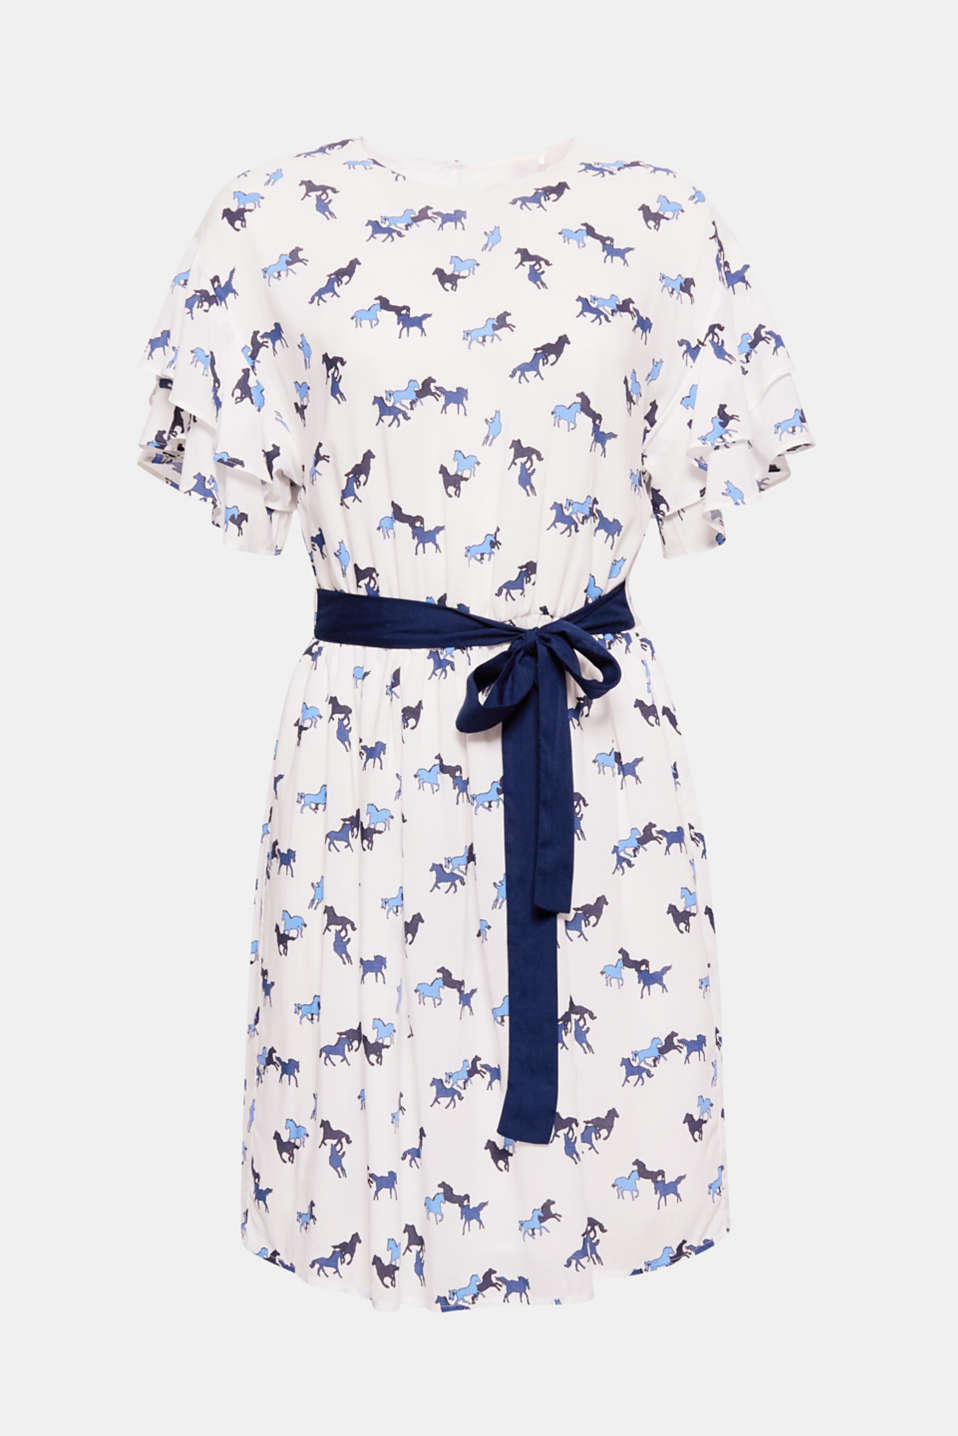 The charming horse print, the pretty flounce sleeves and the waist-accentuating belt makes this dress an ultra-feminine eye-catcher!